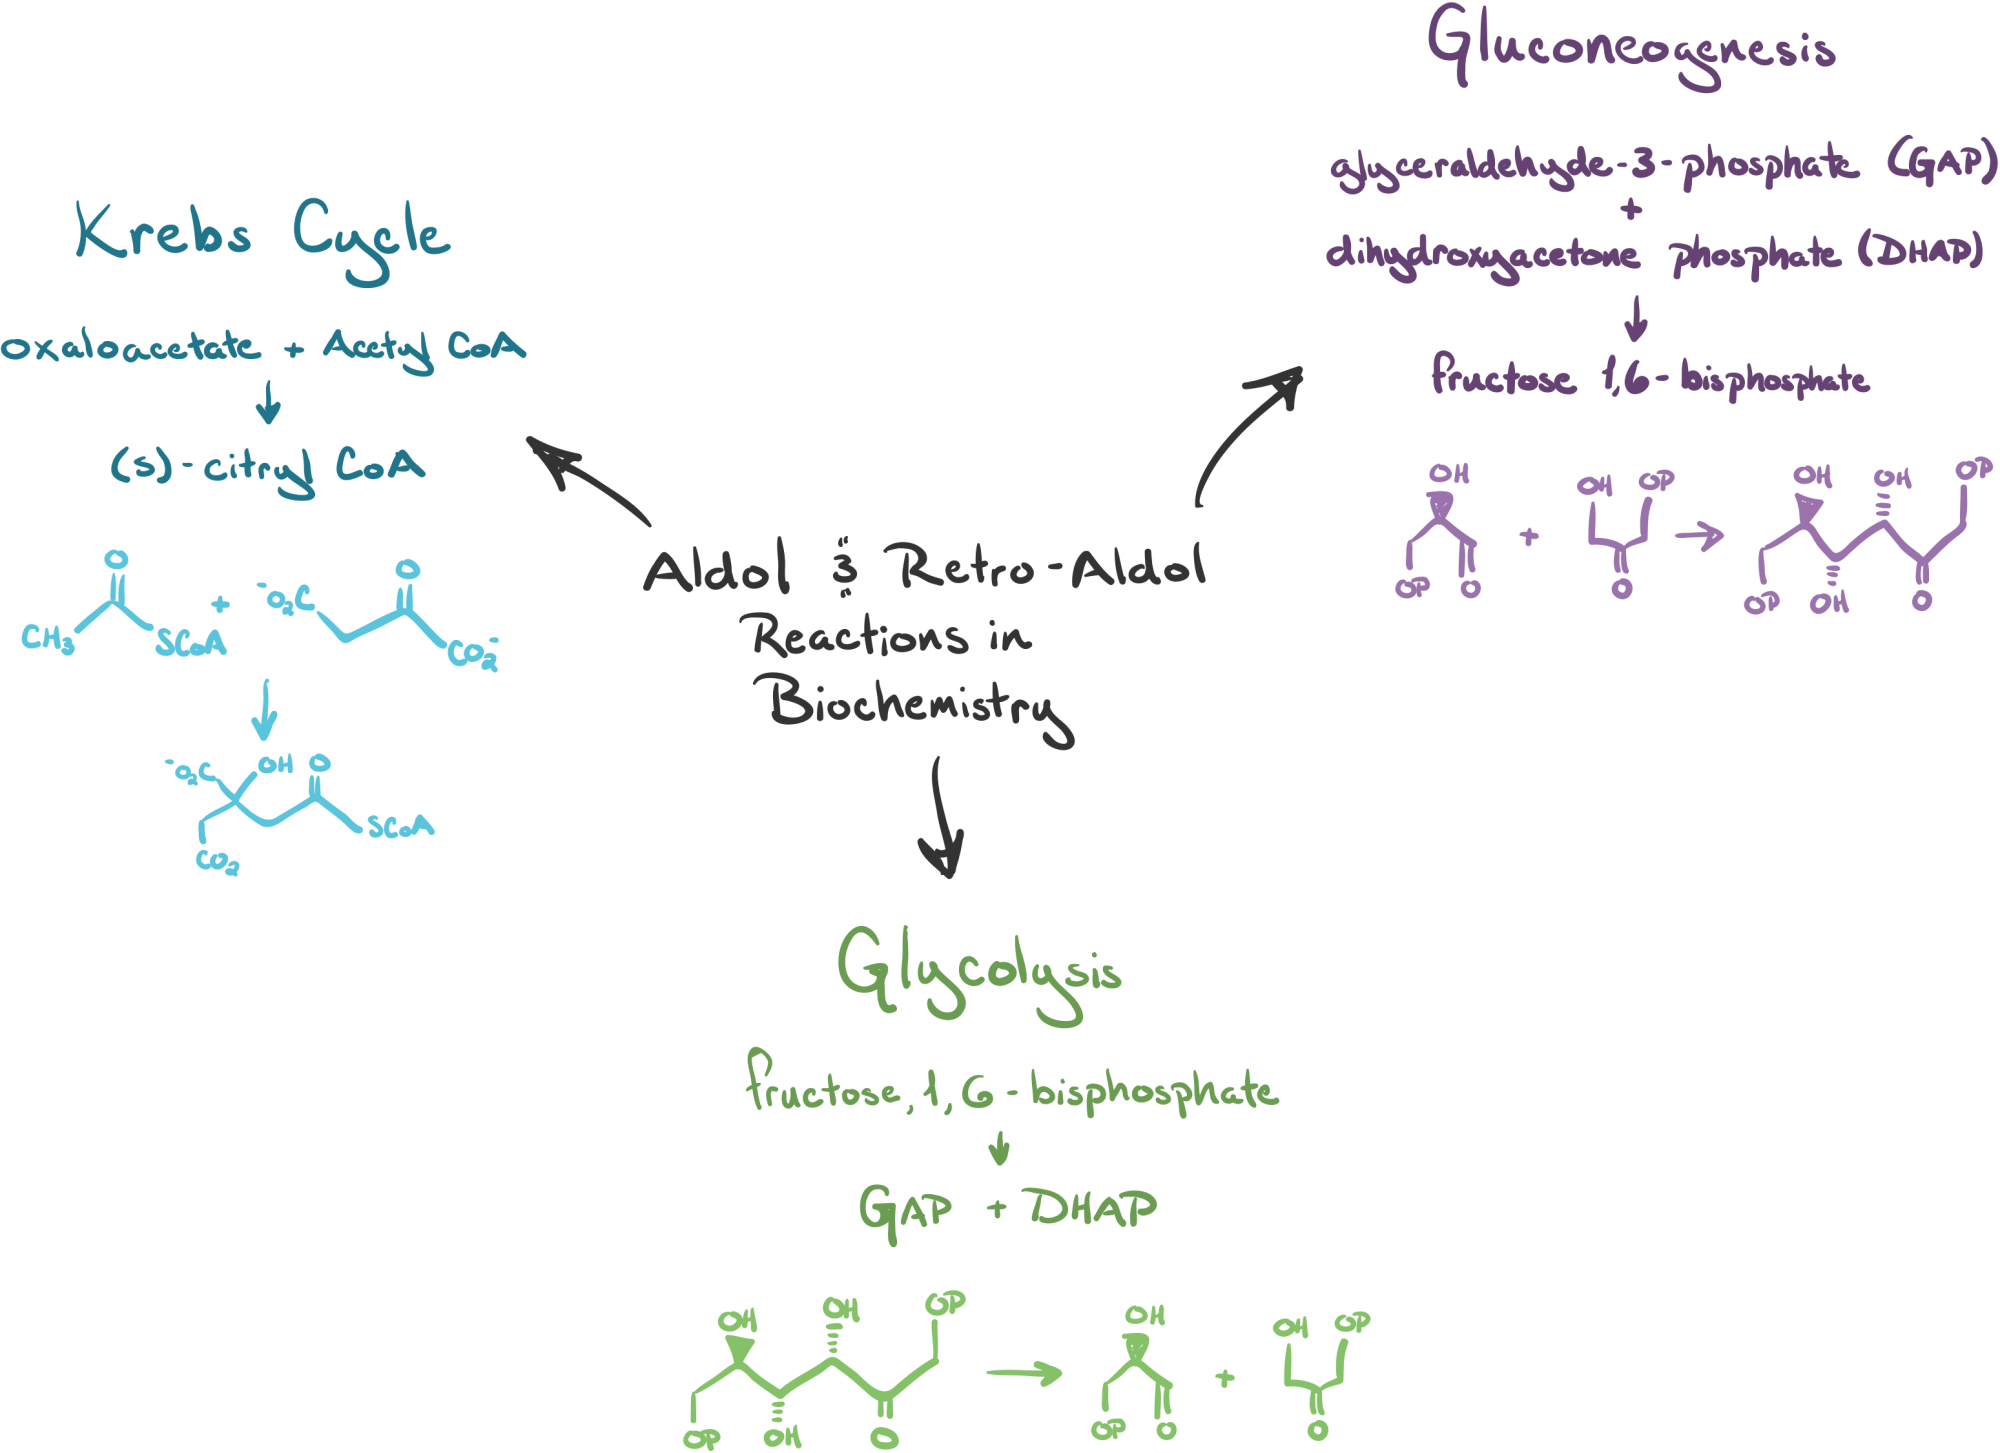 hight resolution of diagram showing the three metabolic processes that use aldol and retro aldol reactions the